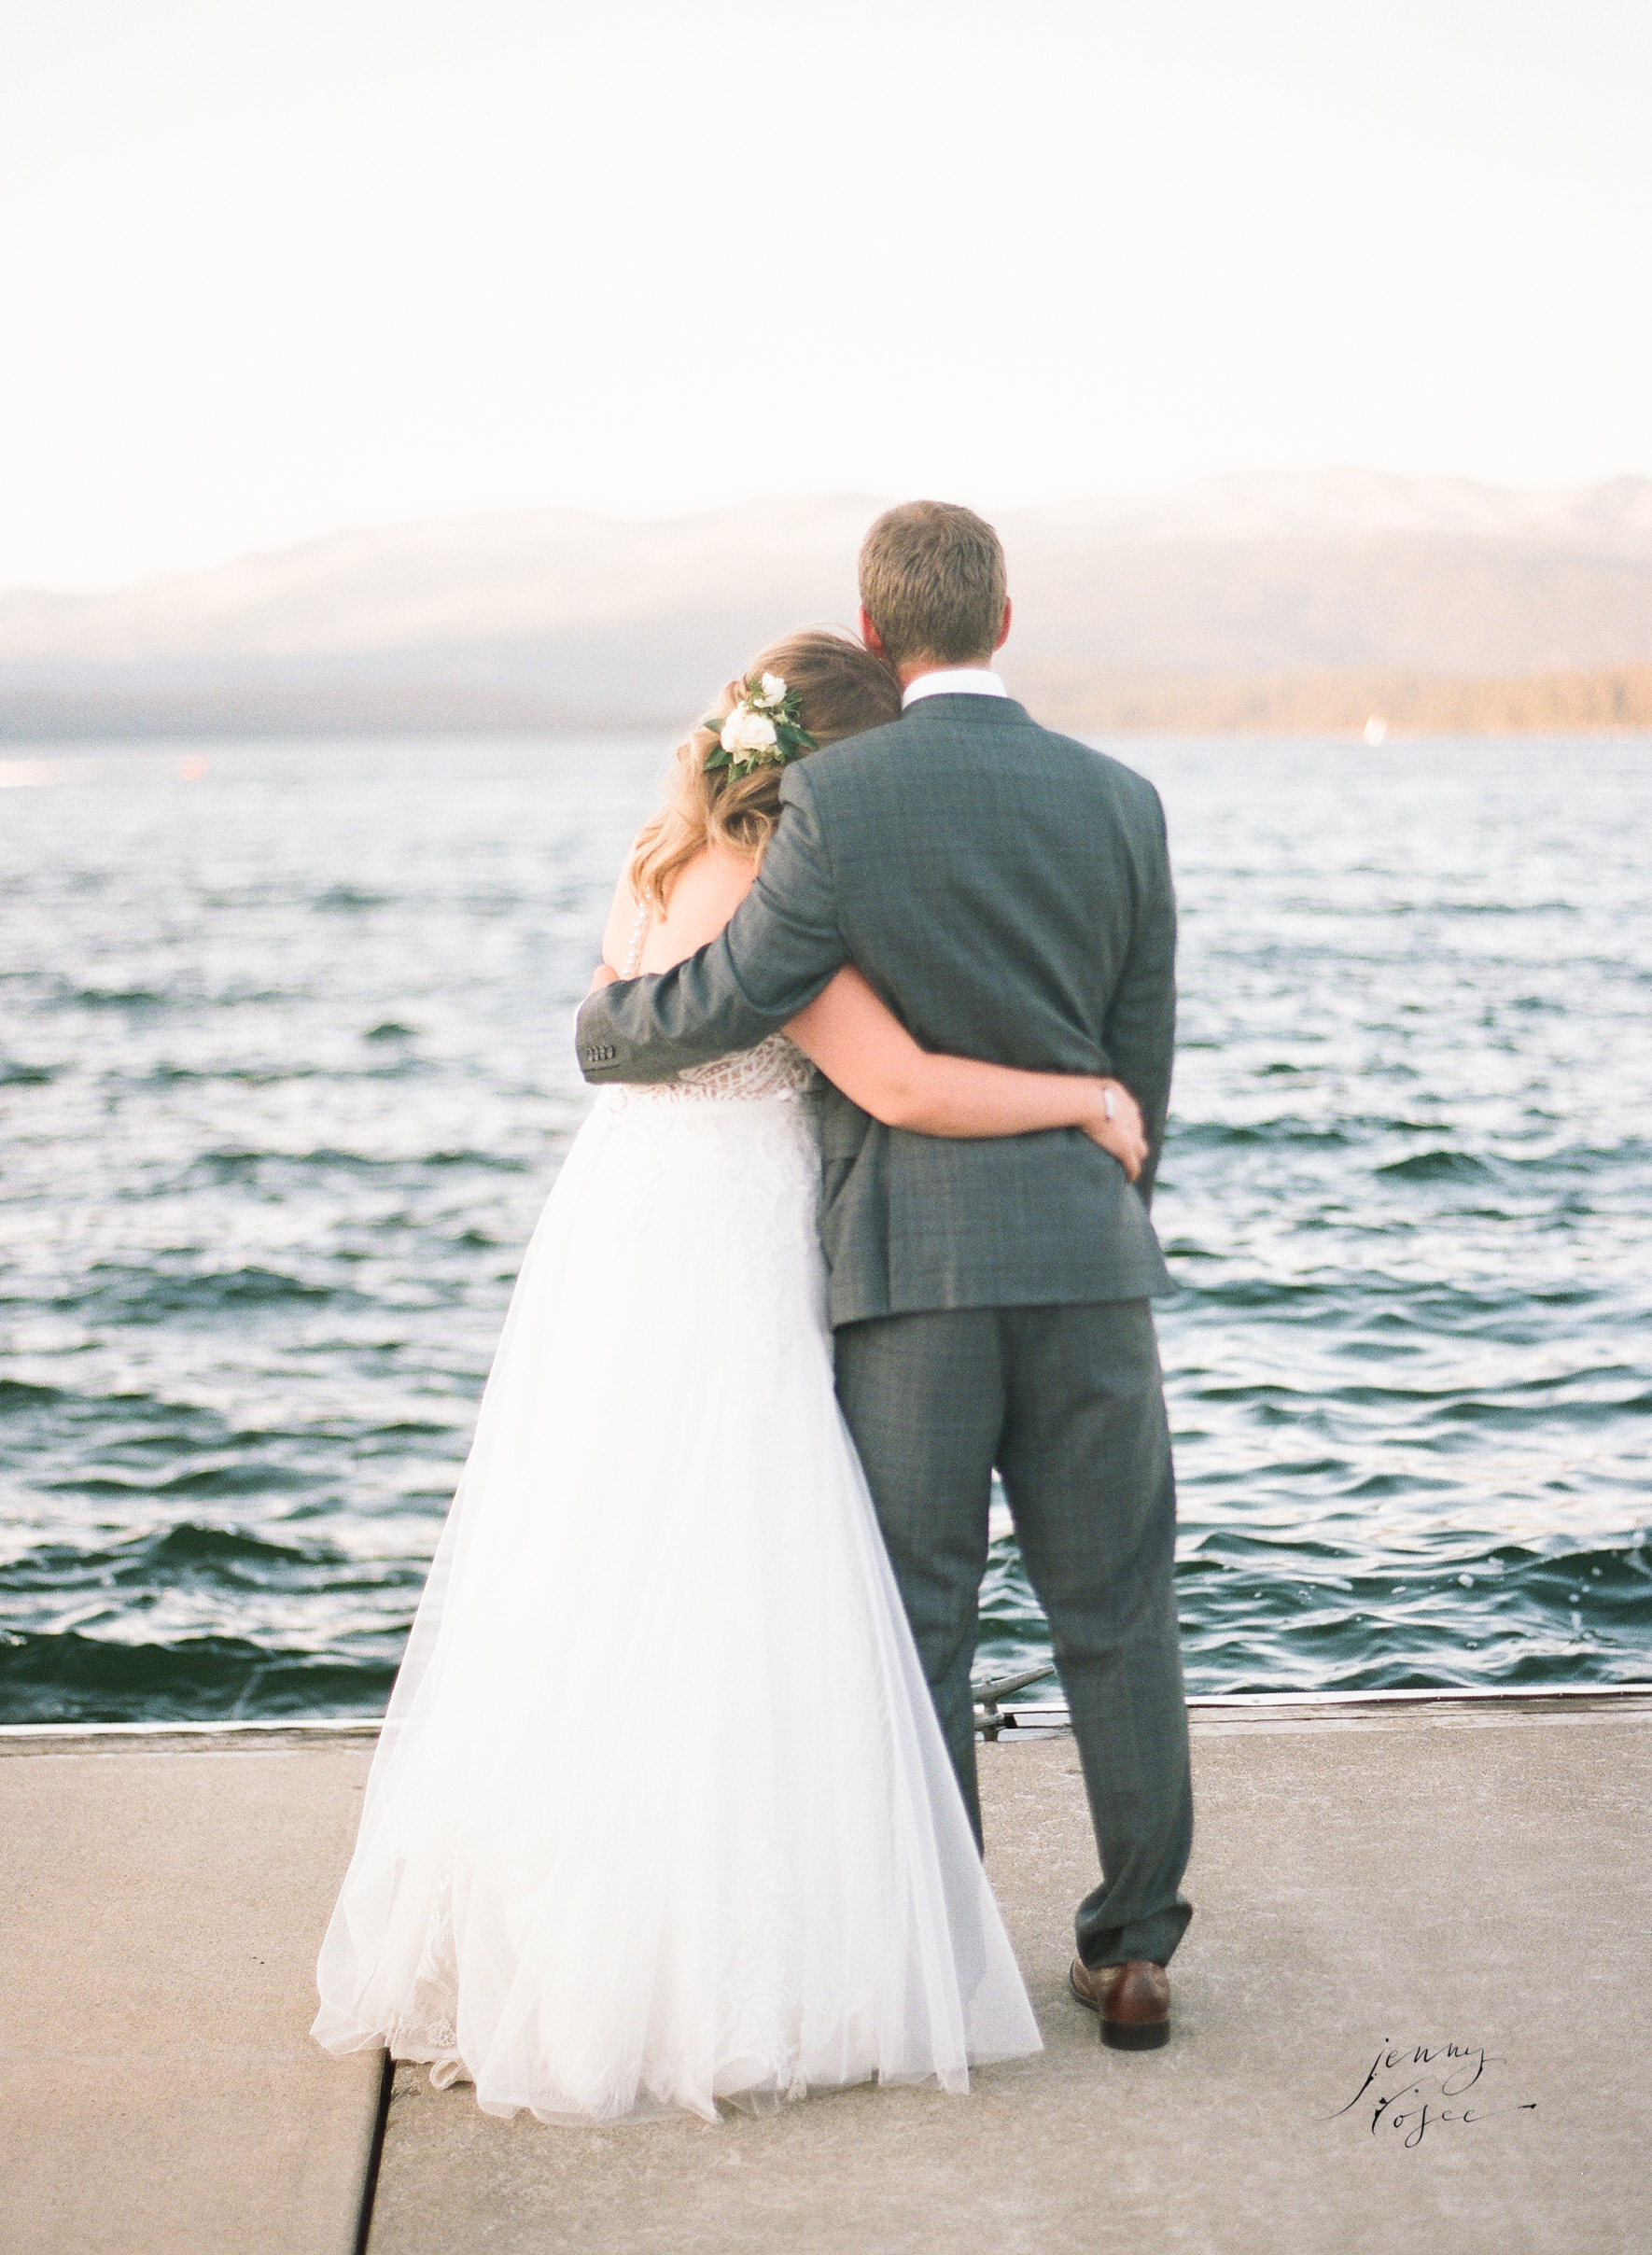 Shore Lodge in McCall Idaho is rated one of the best small towns in Idaho! It is such a charming, welcoming town only 2.5 hours outside of Boise. There is plenty for the family to do like boating, hiking, and restaurants so everyone can make a mini vacation out of the event!  http://shorelodge.com/weddings/